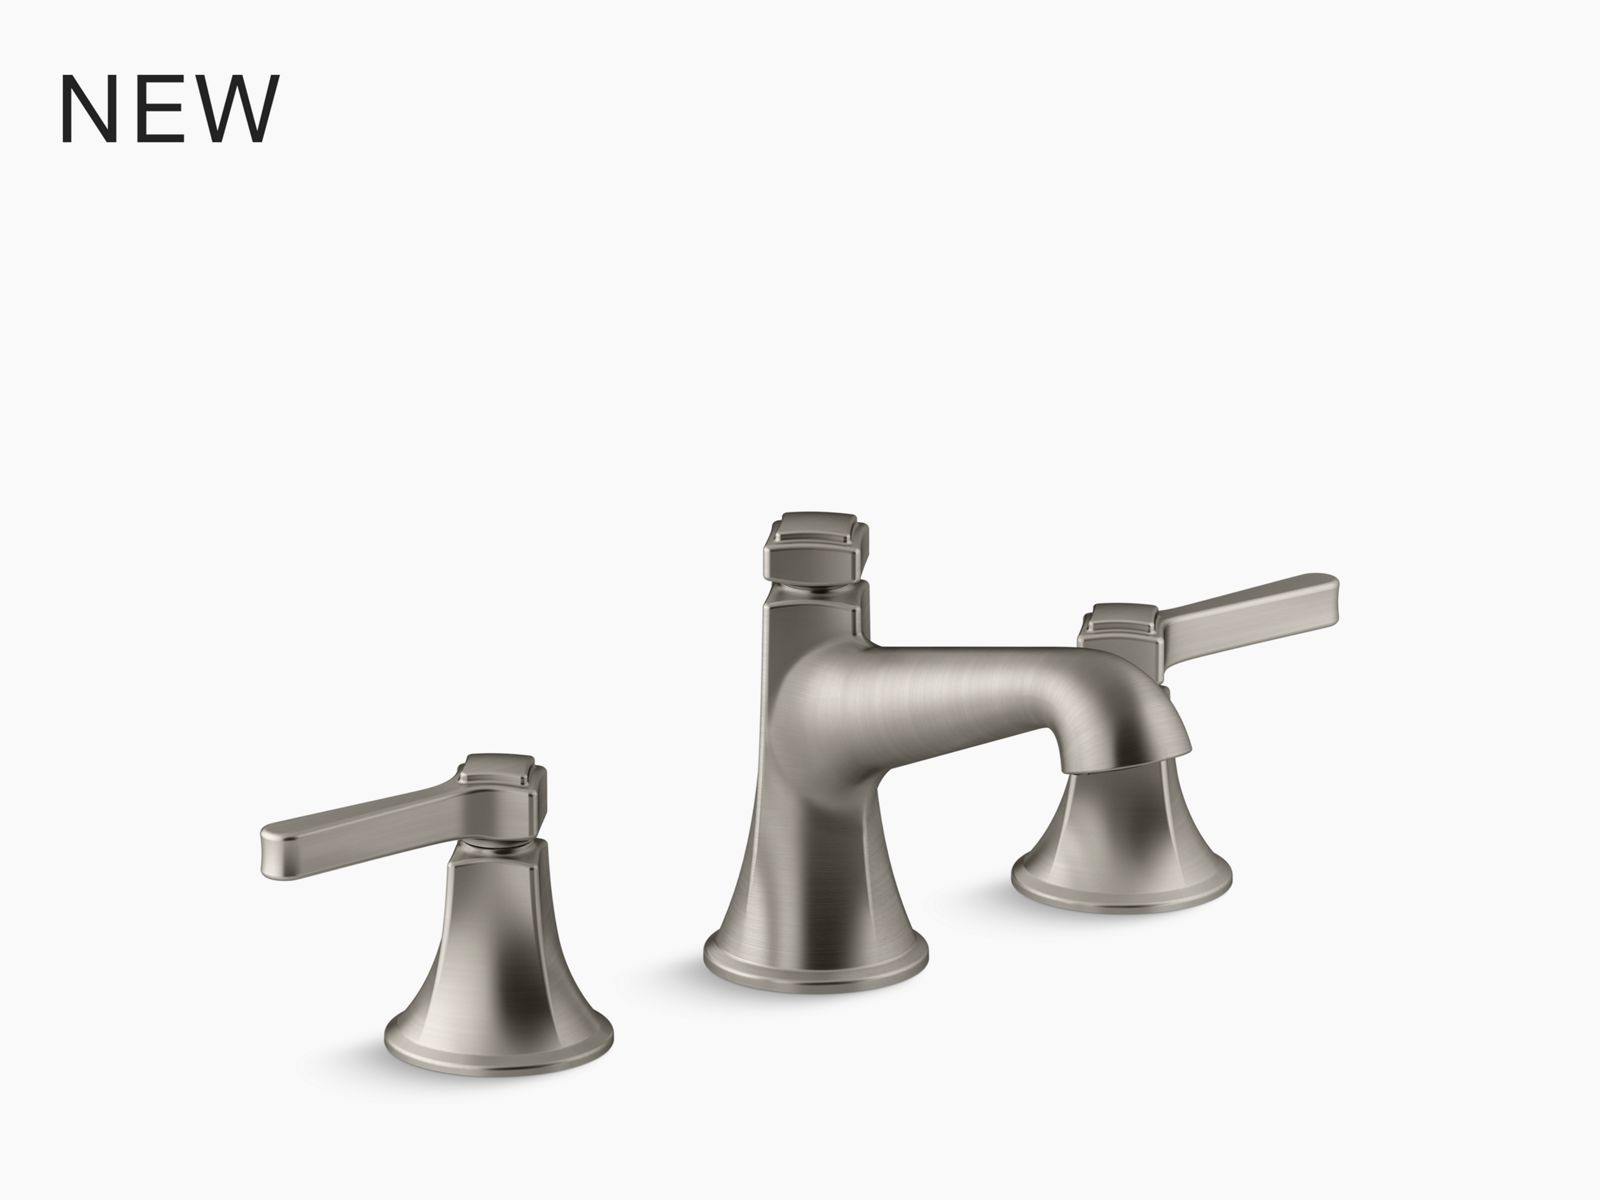 wall mount lavatory faucet 14602t 4